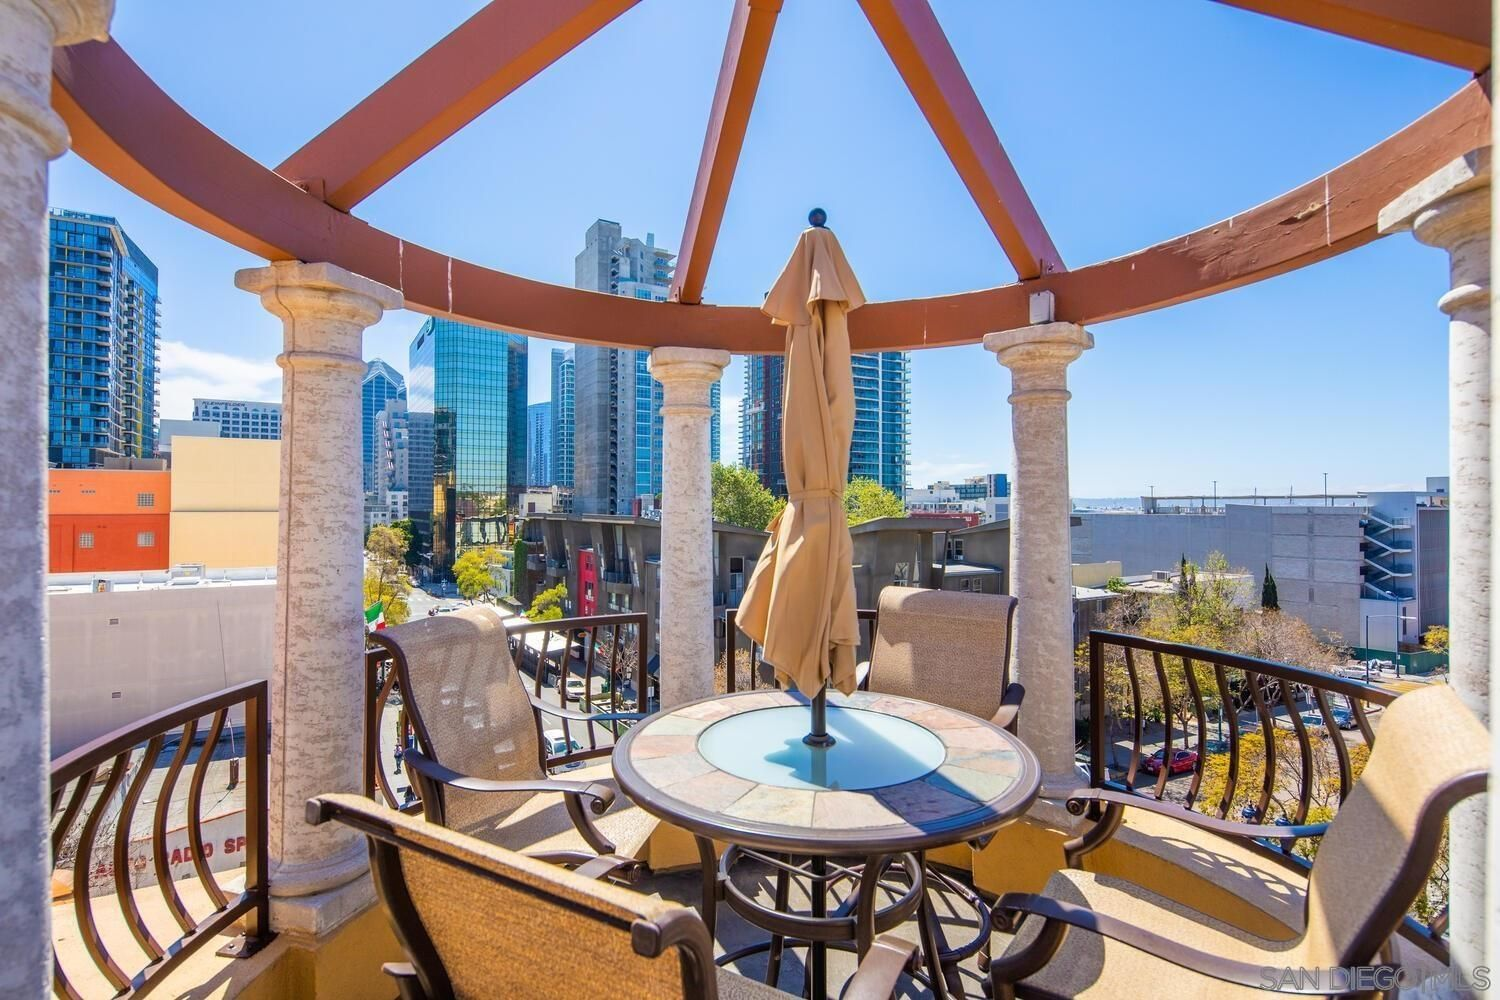 Main Photo: Condo for sale : 2 bedrooms : 1601 India St. #101 in San Diego